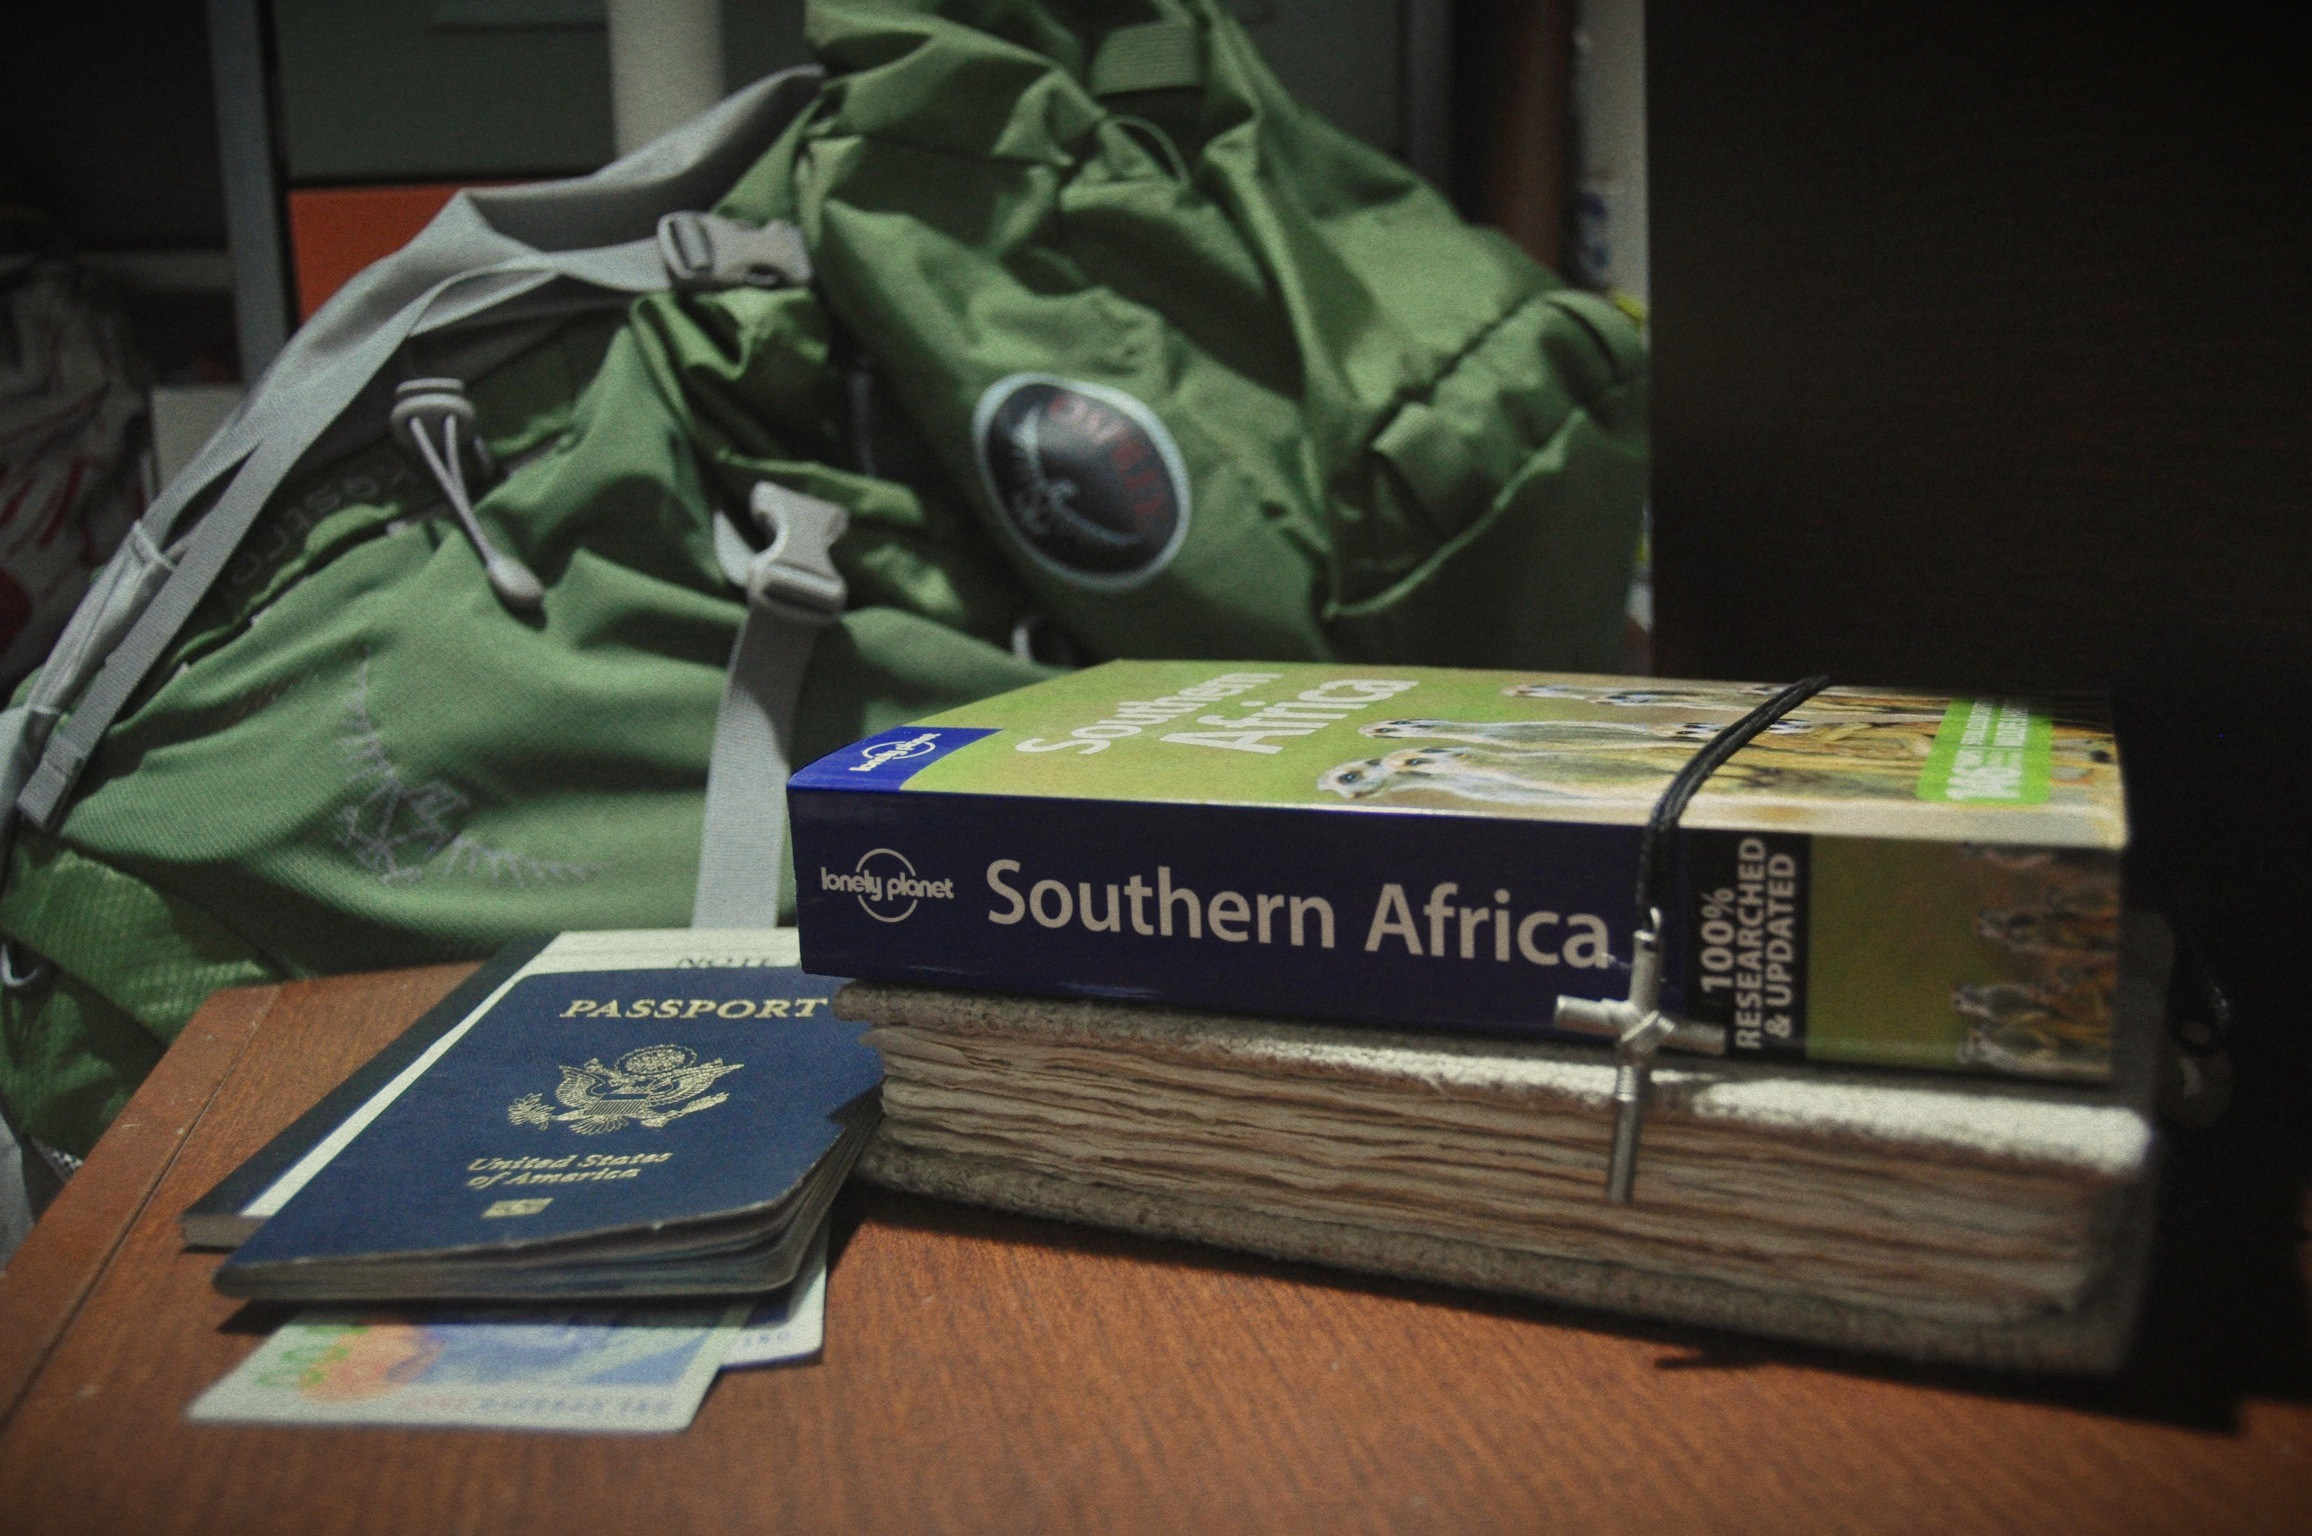 #14 South Africa Packed-8383101030.jpg